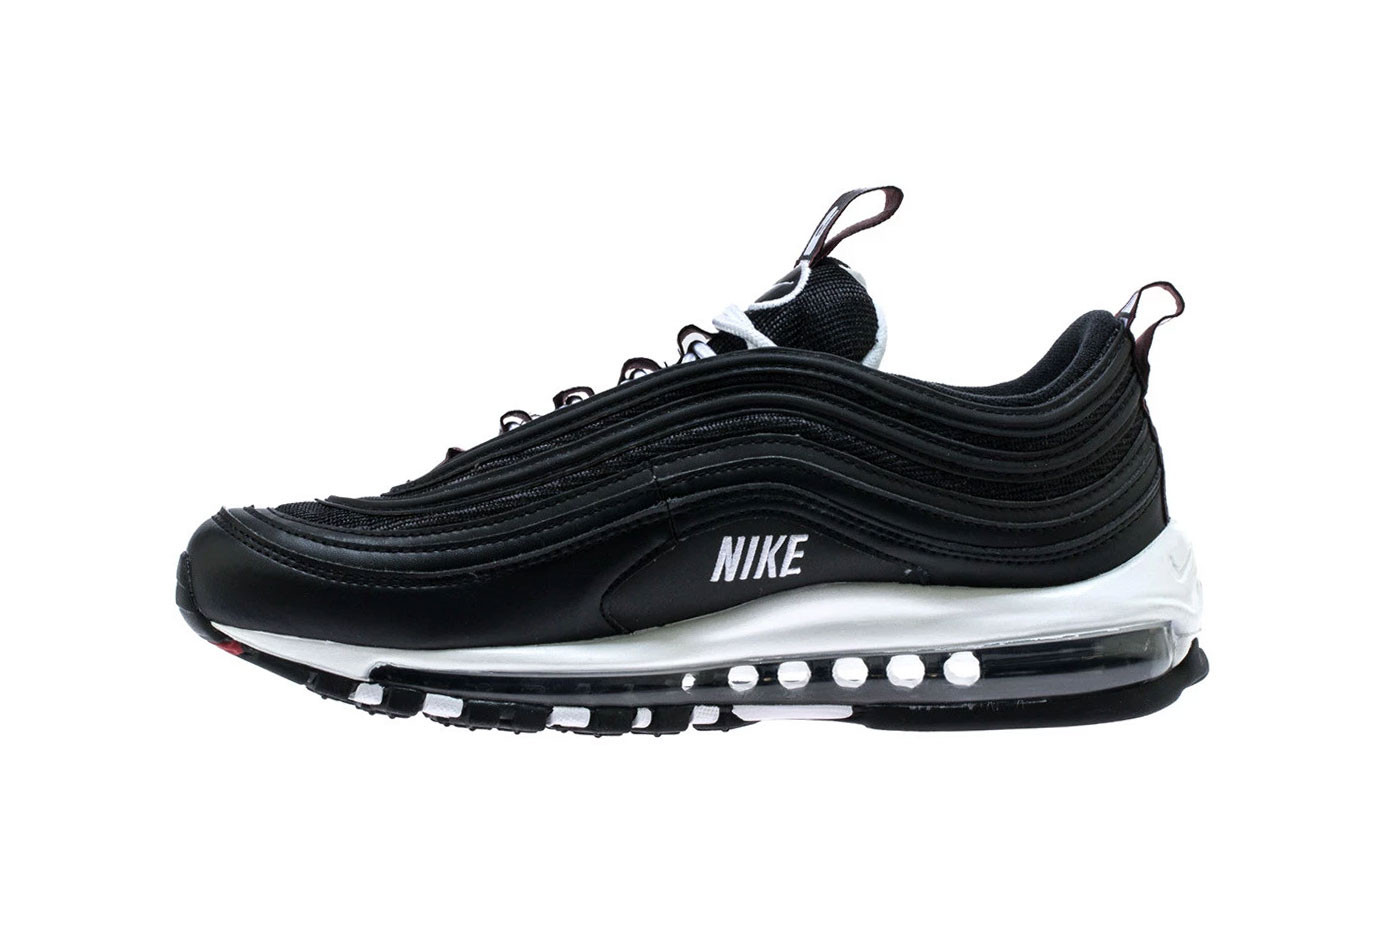 Latest Nike Air Max 97 Premium Comes with Pull-Tabs